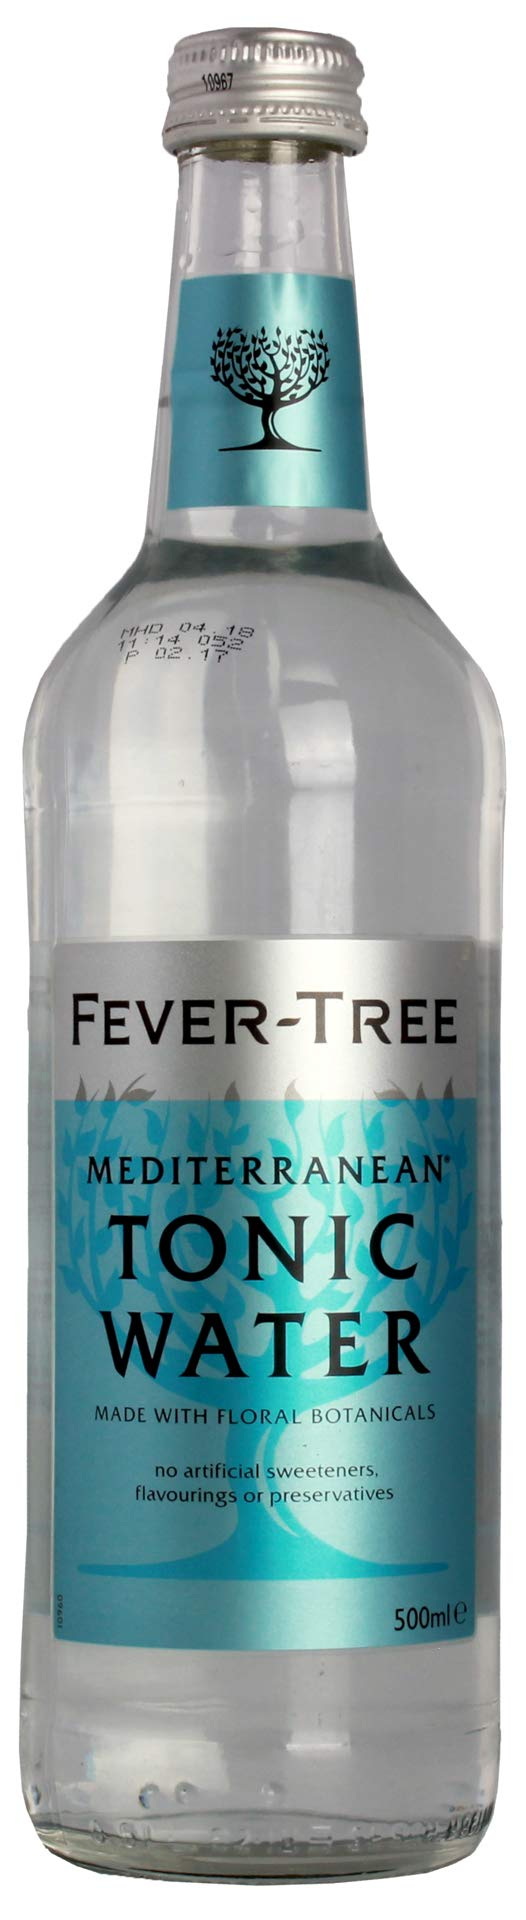 Fever-Tree Mediterranean Tonic Water 500ml (Pack of 6) by Fever-Tree